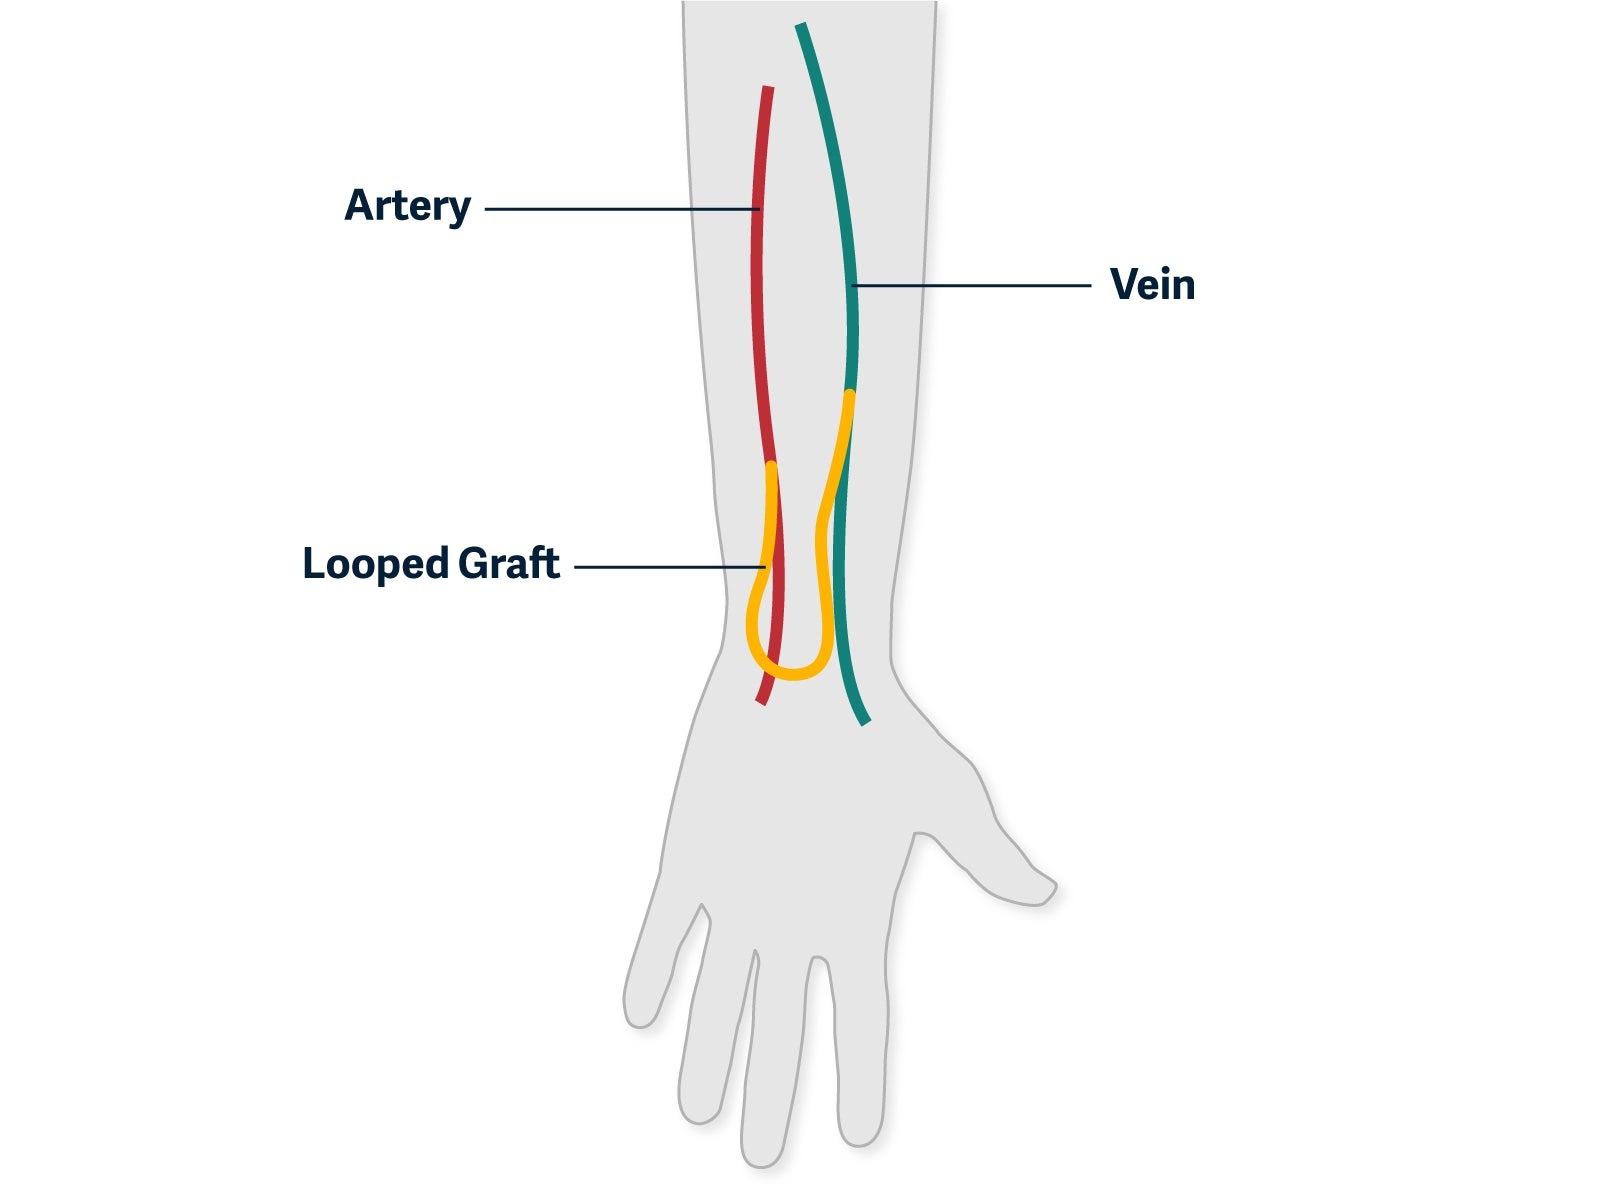 graphic showing a graft